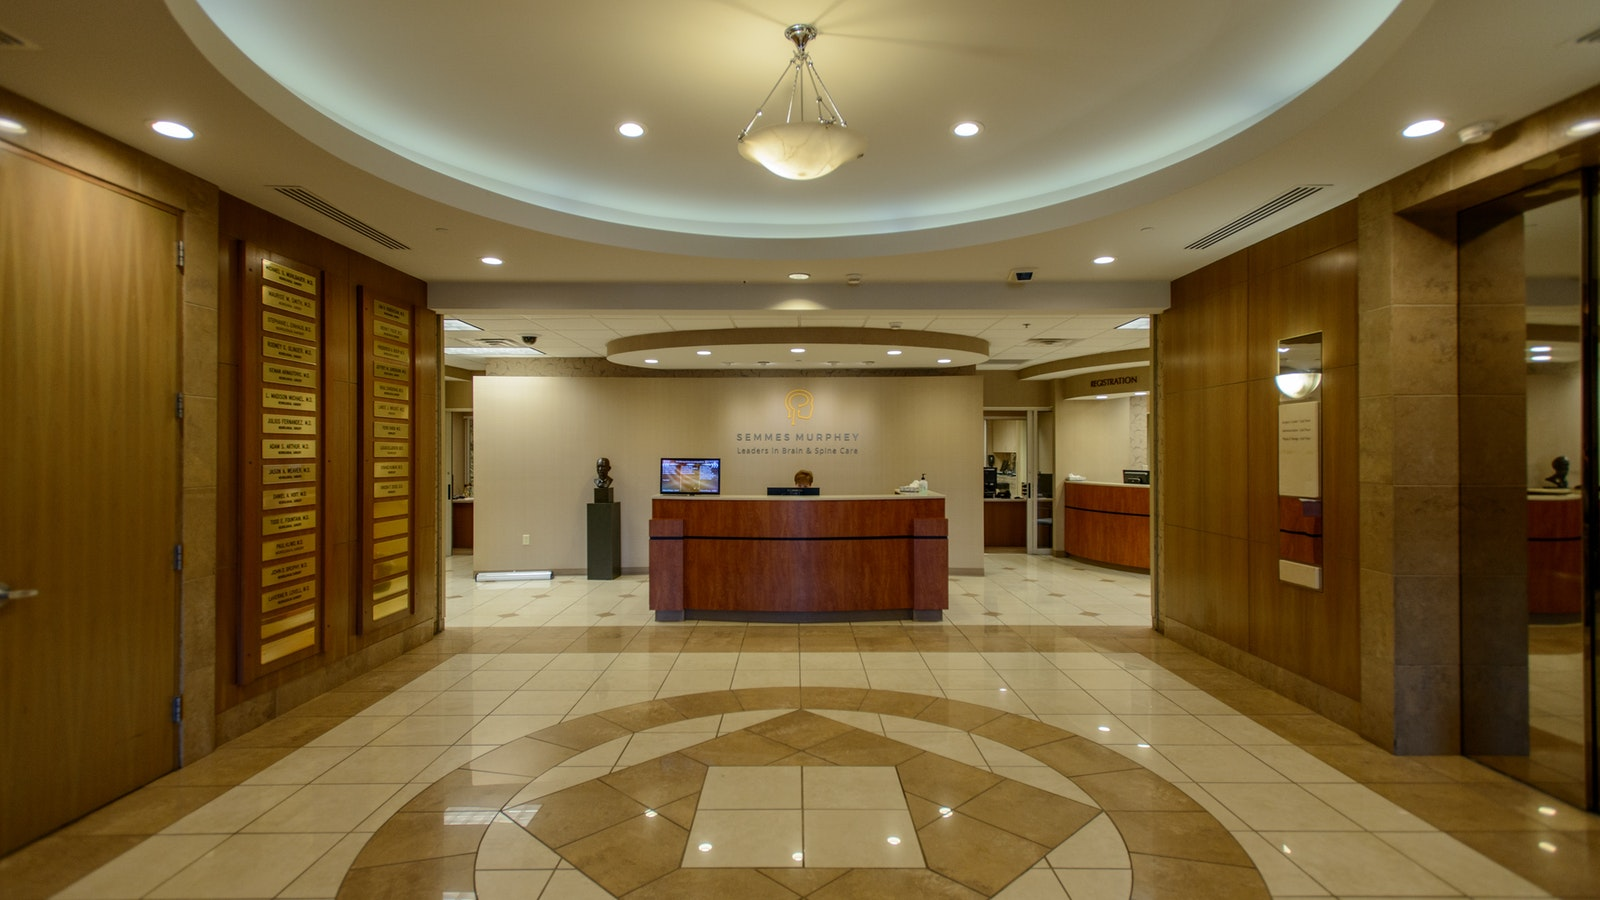 Lobby entrance of Semmes Murphey clinic, with a reception desk